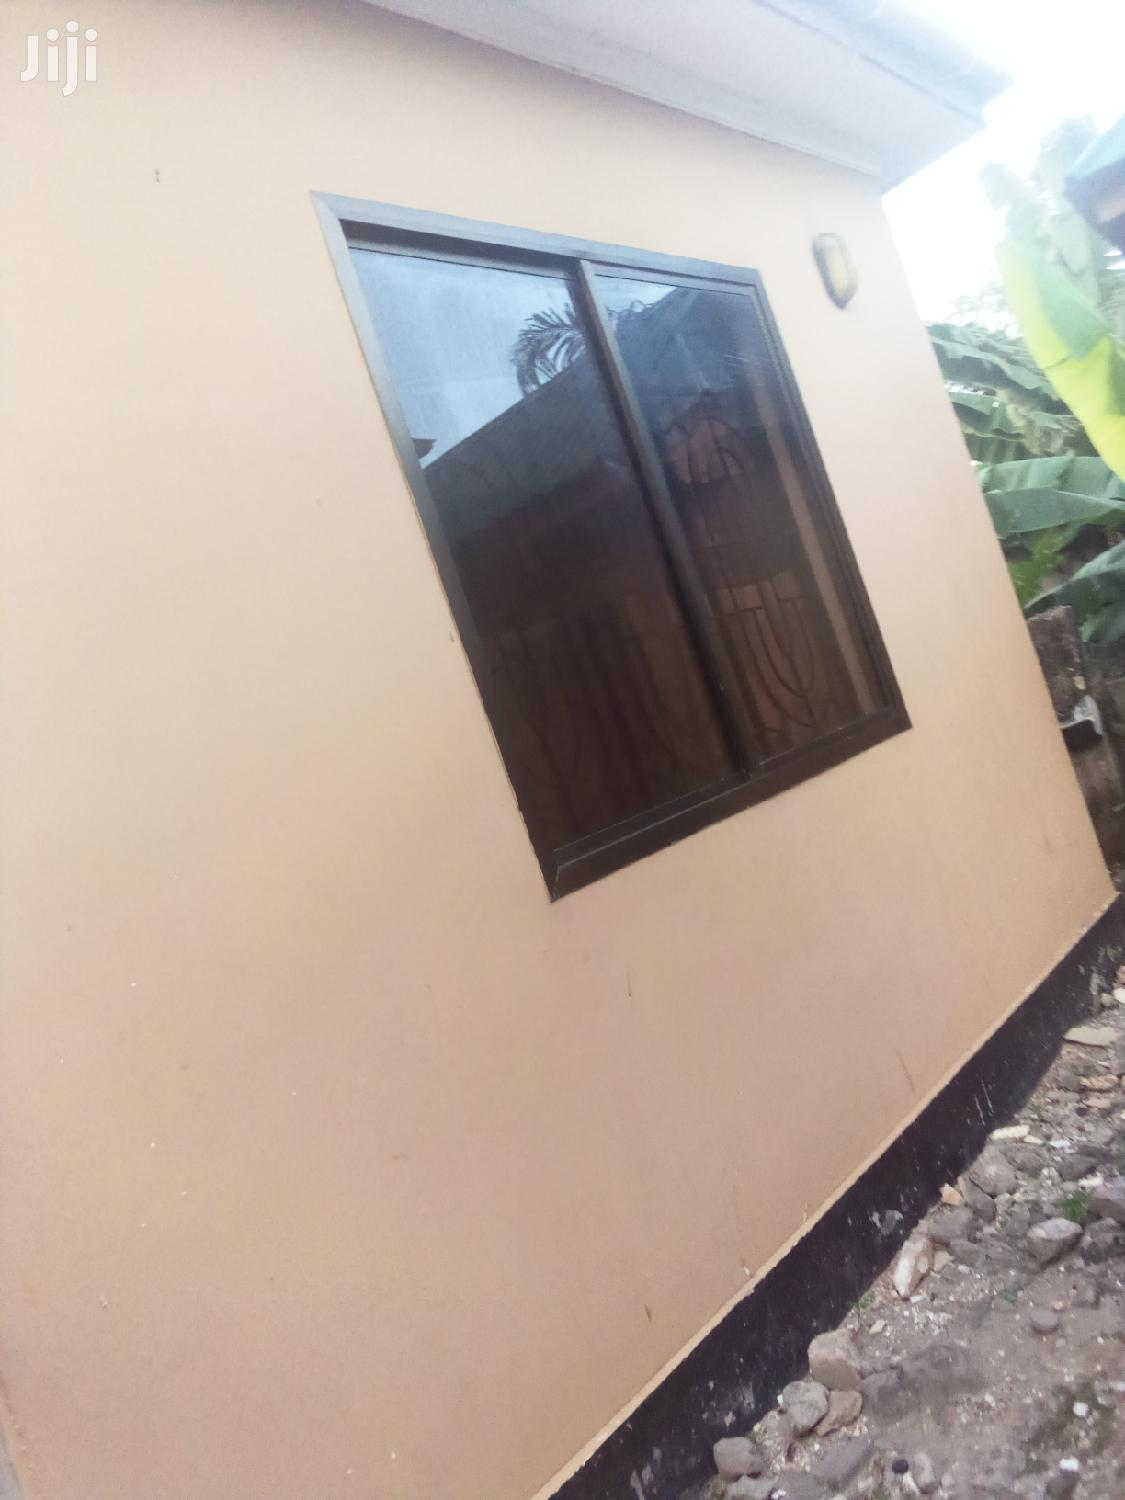 Hostel Full Furniture 1month Only | Houses & Apartments For Rent for sale in Sinza, Kinondoni, Tanzania